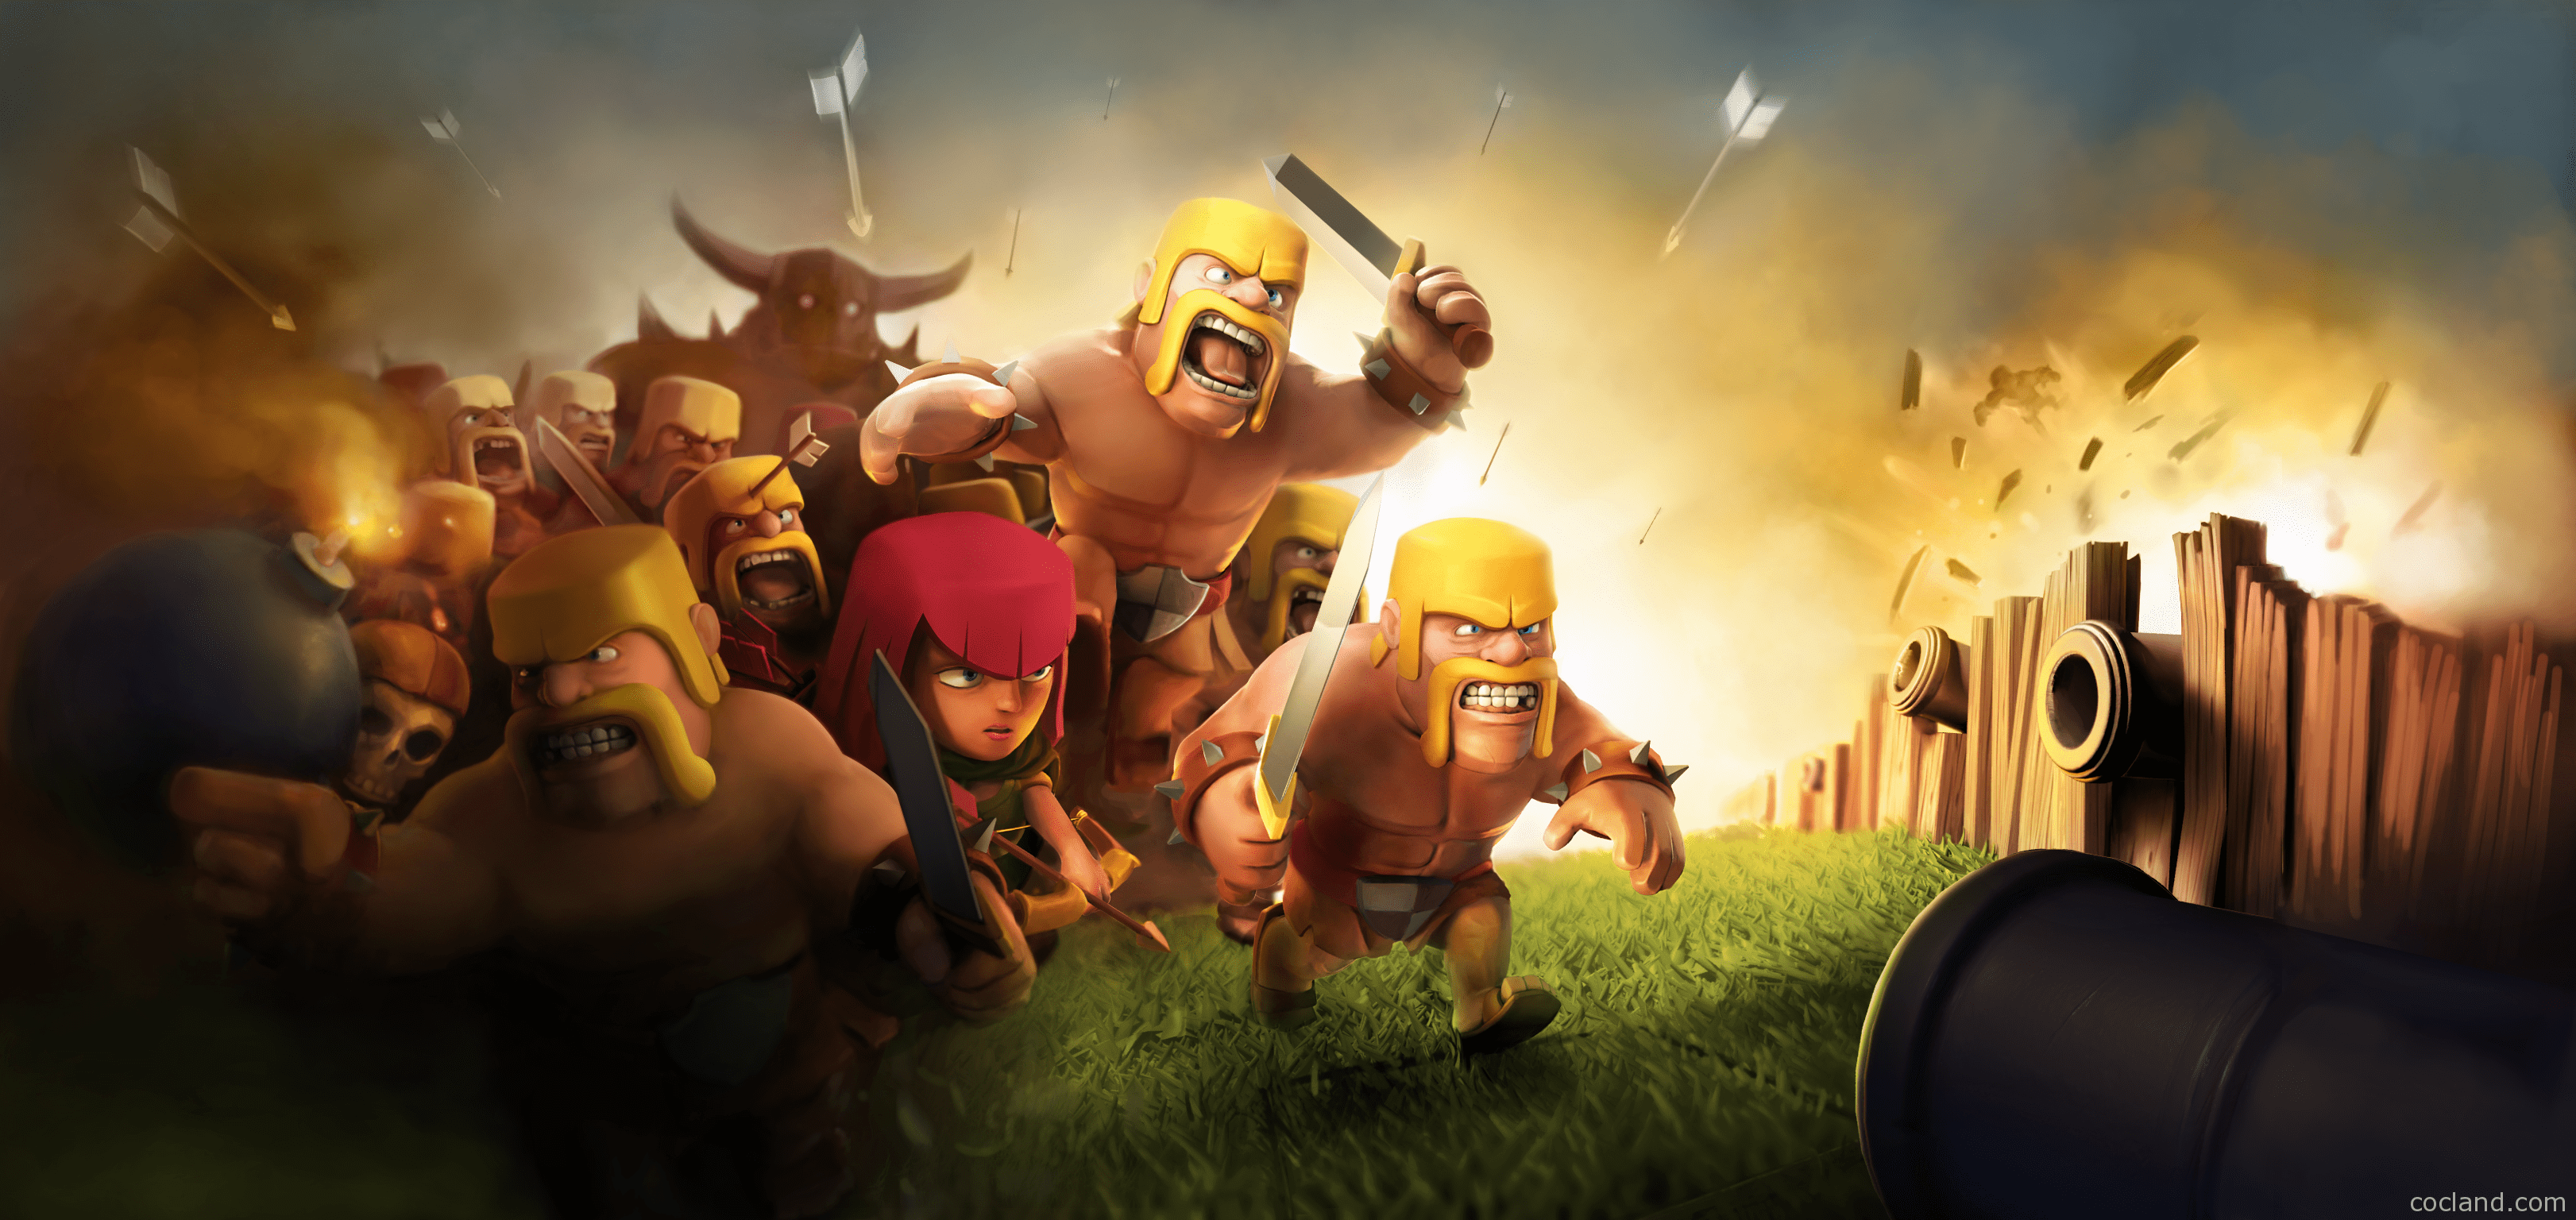 4K Clash of Clans Wallpaper Free